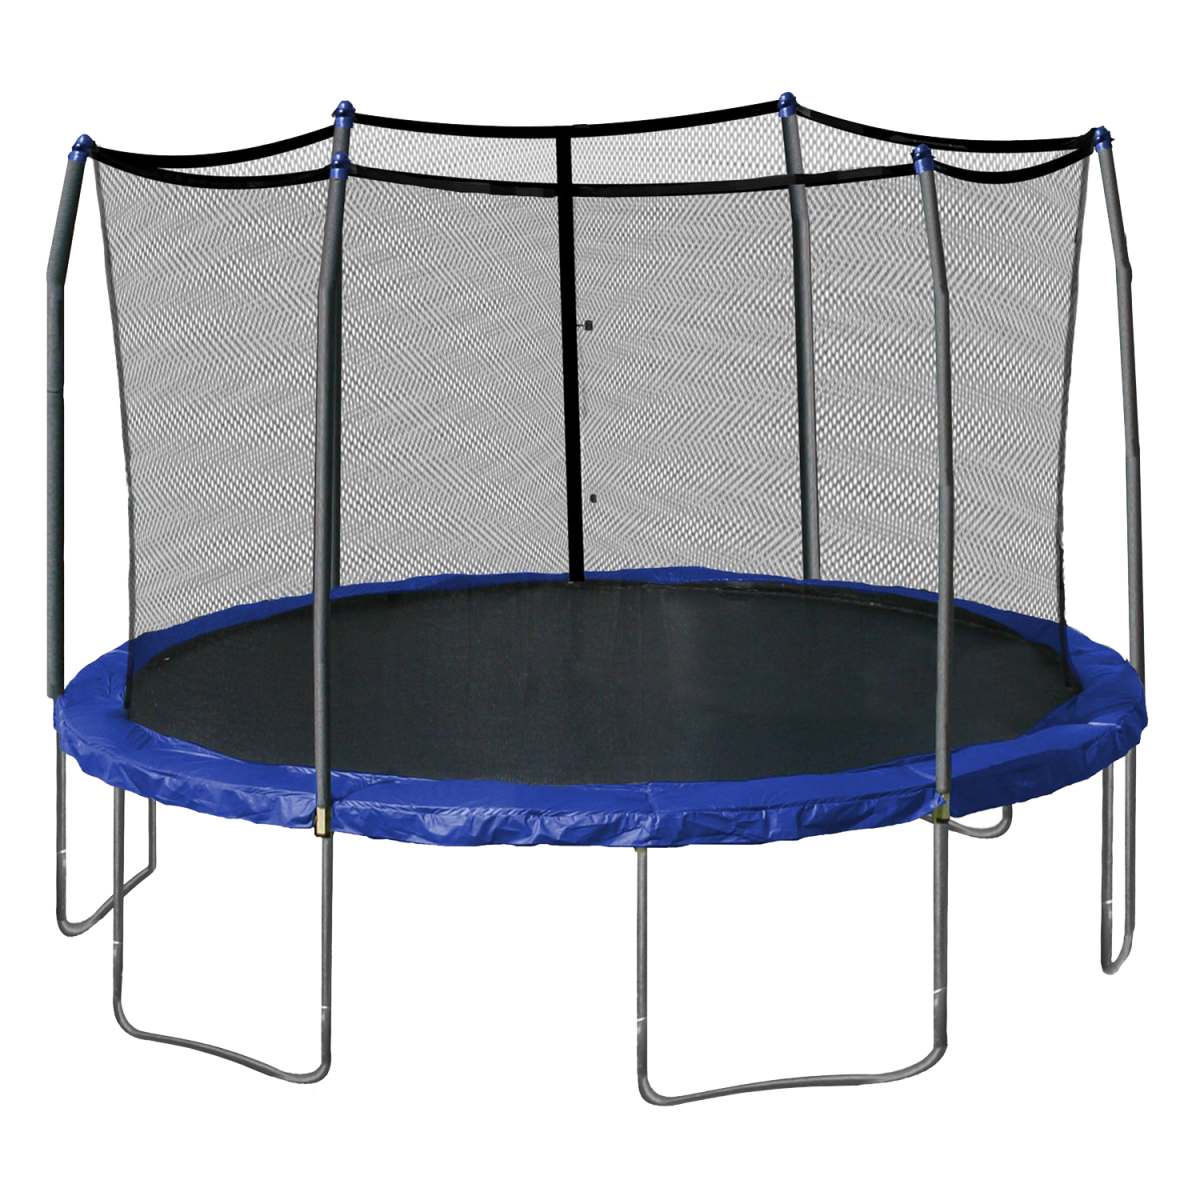 Outdoor Trampoline With Safety Enclosure Review